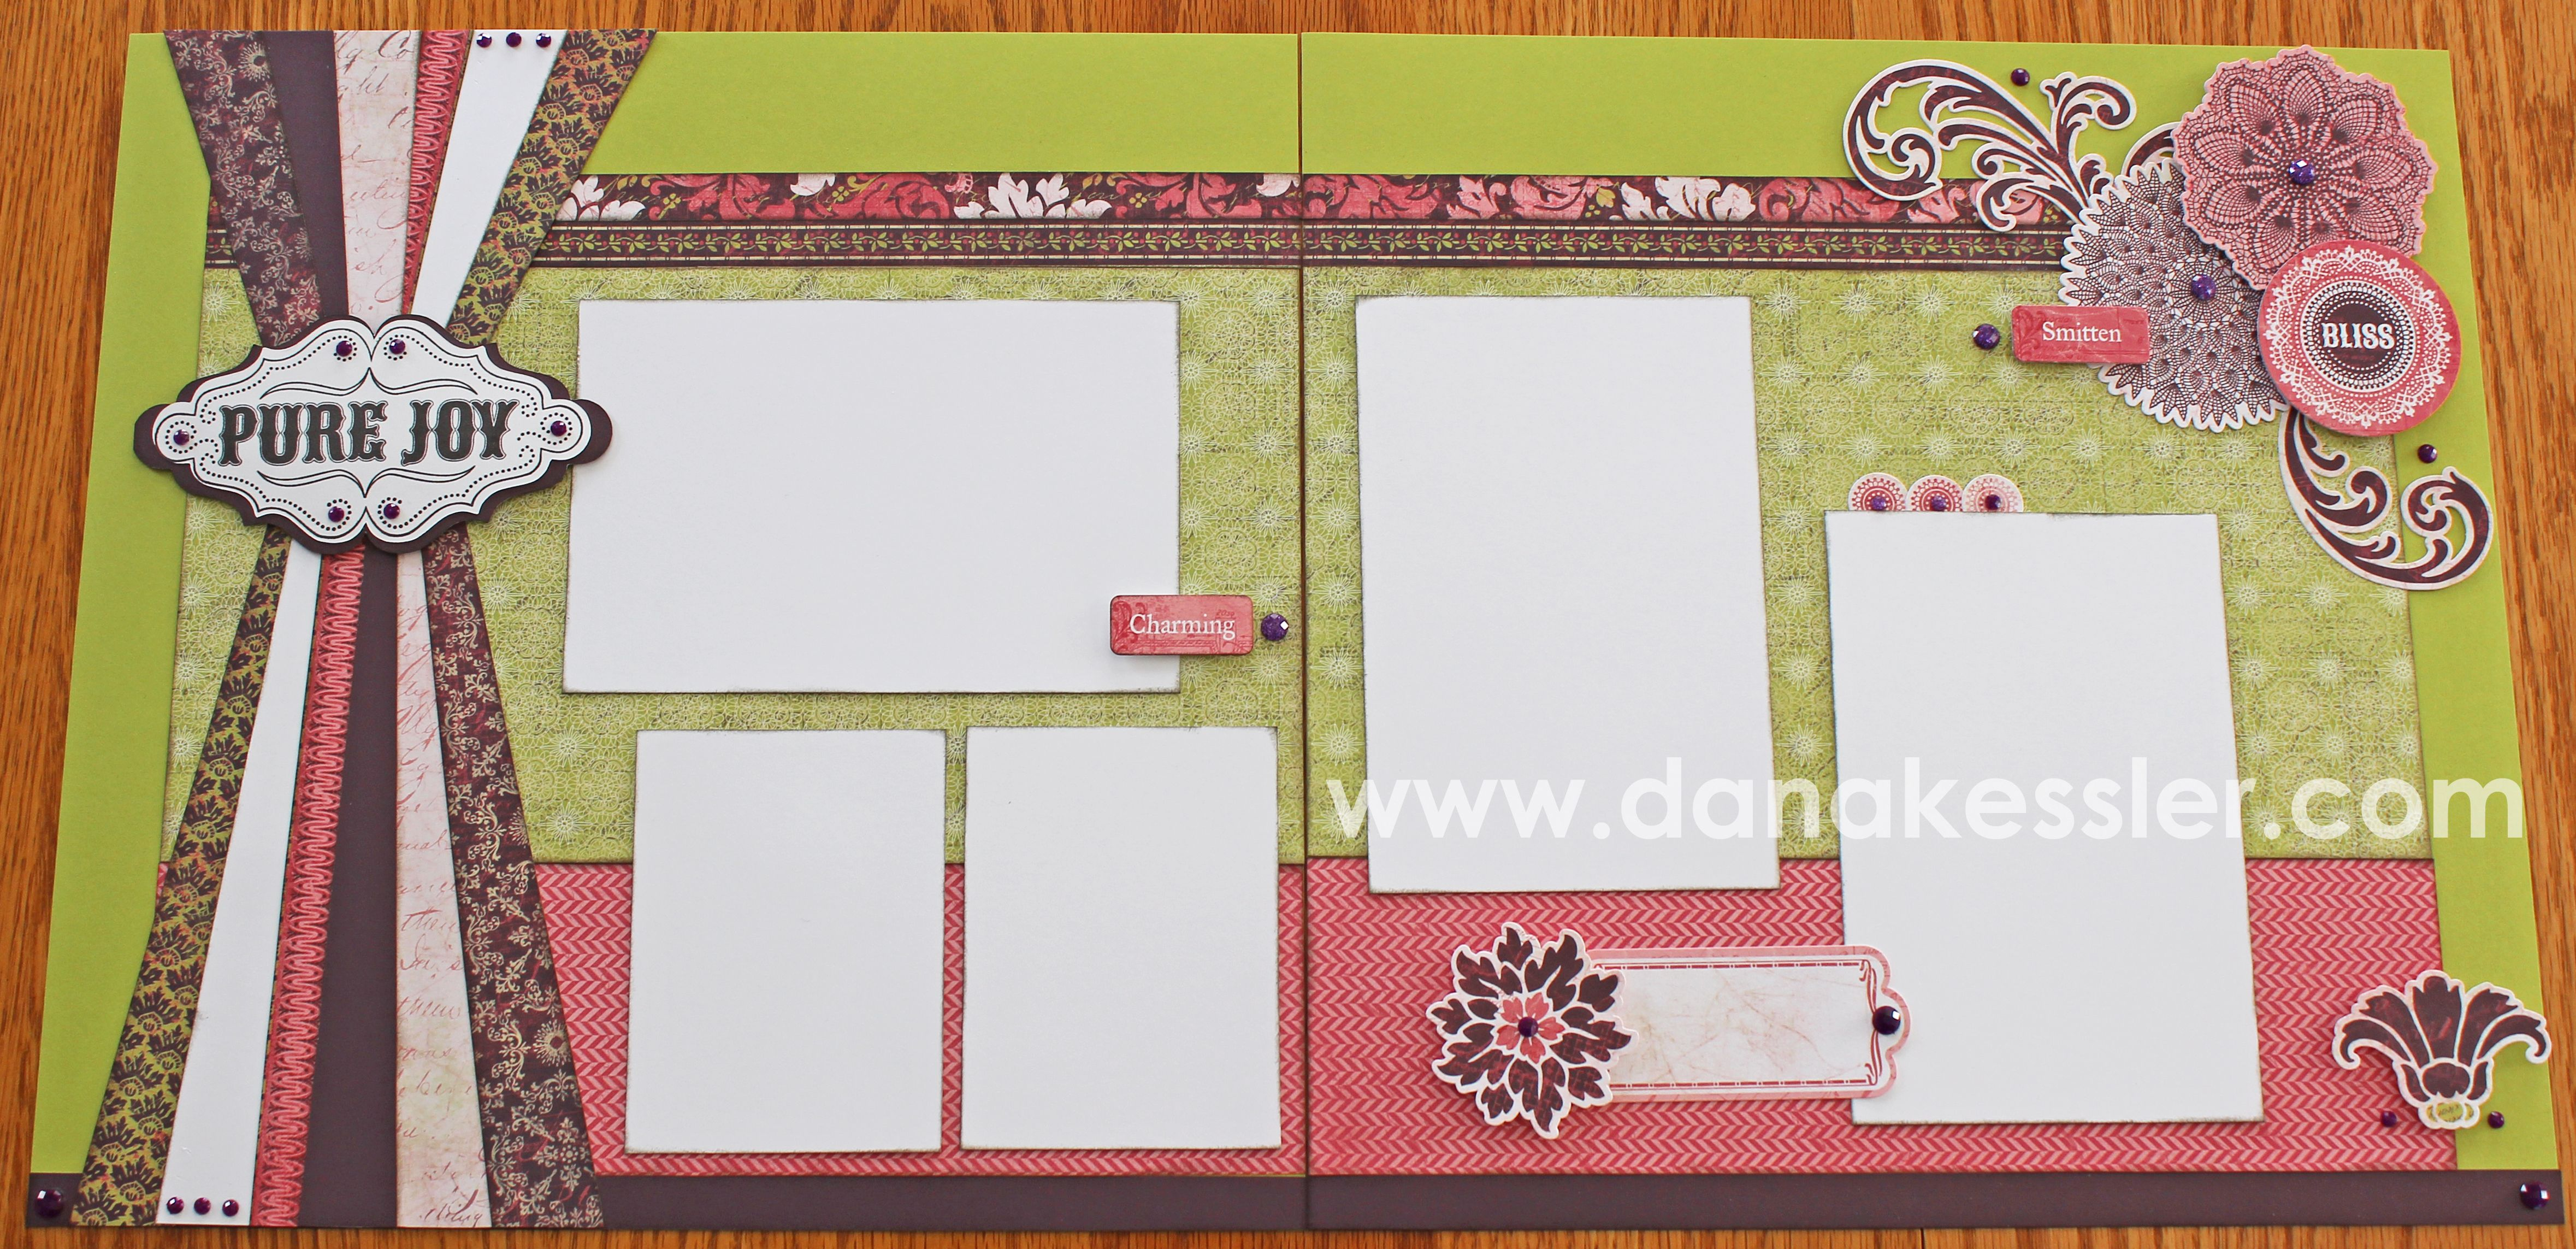 Simply inspired ctmh new idea book blog hop ivy lane